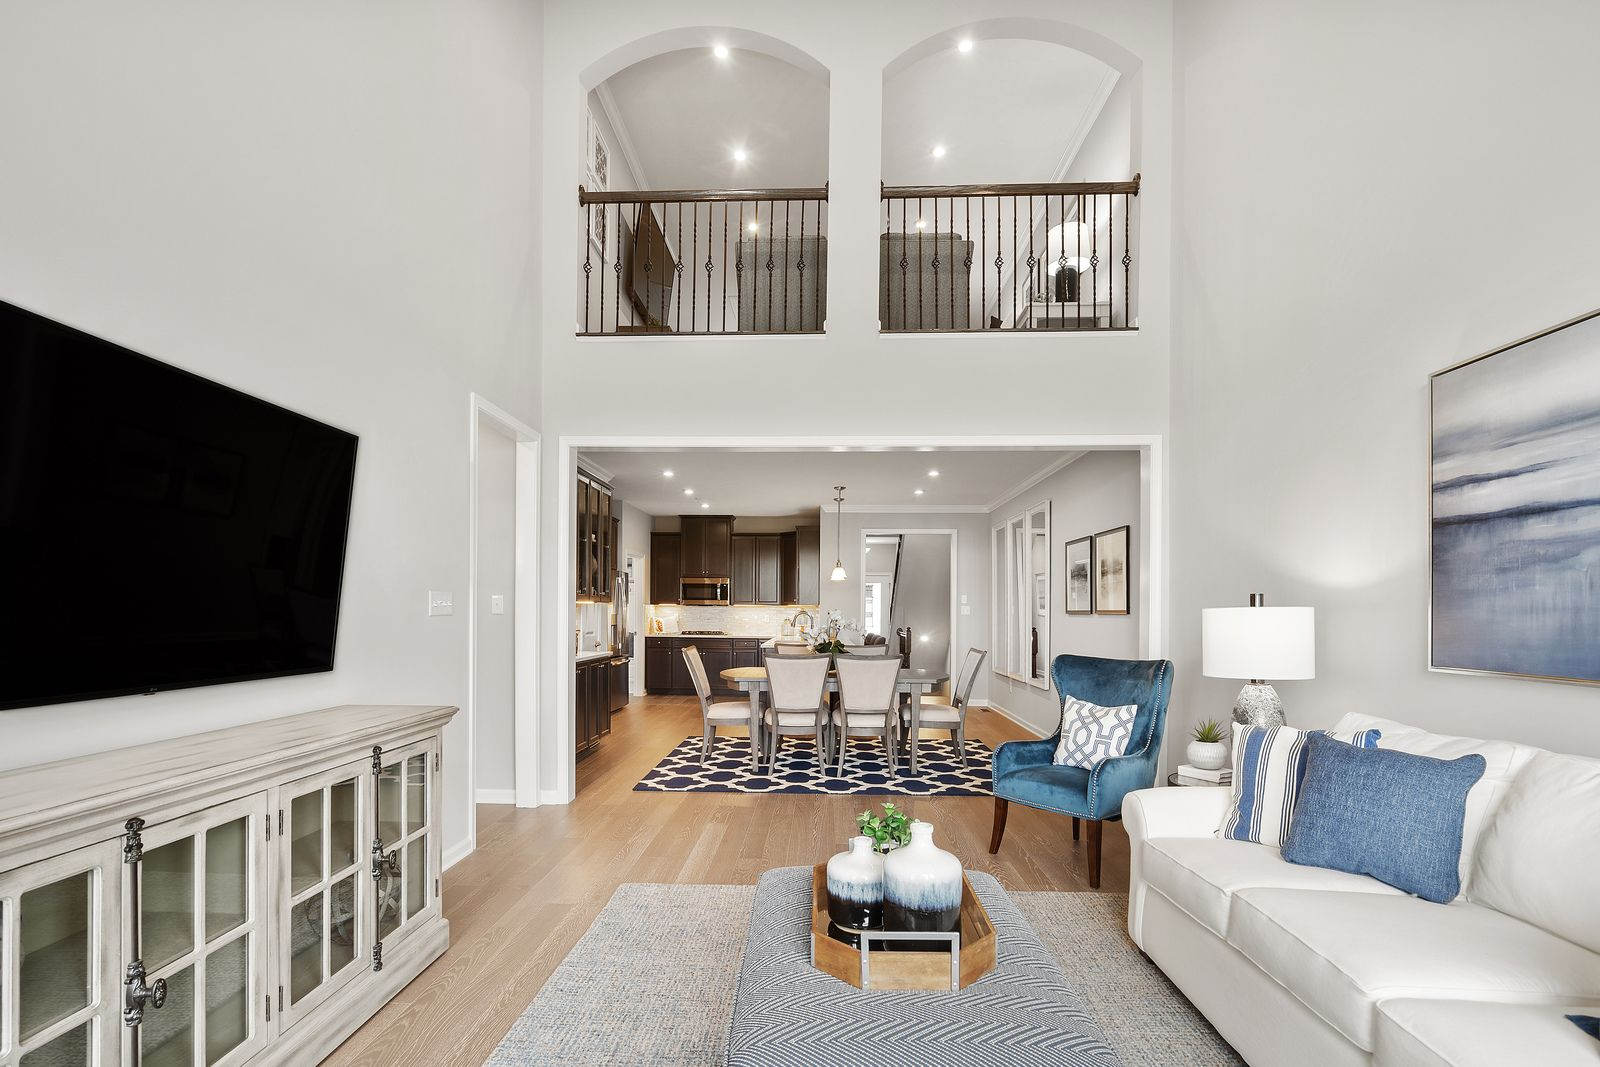 Living Area featured in the Griffin Hall Basement By Ryan Homes in Charlotte, NC